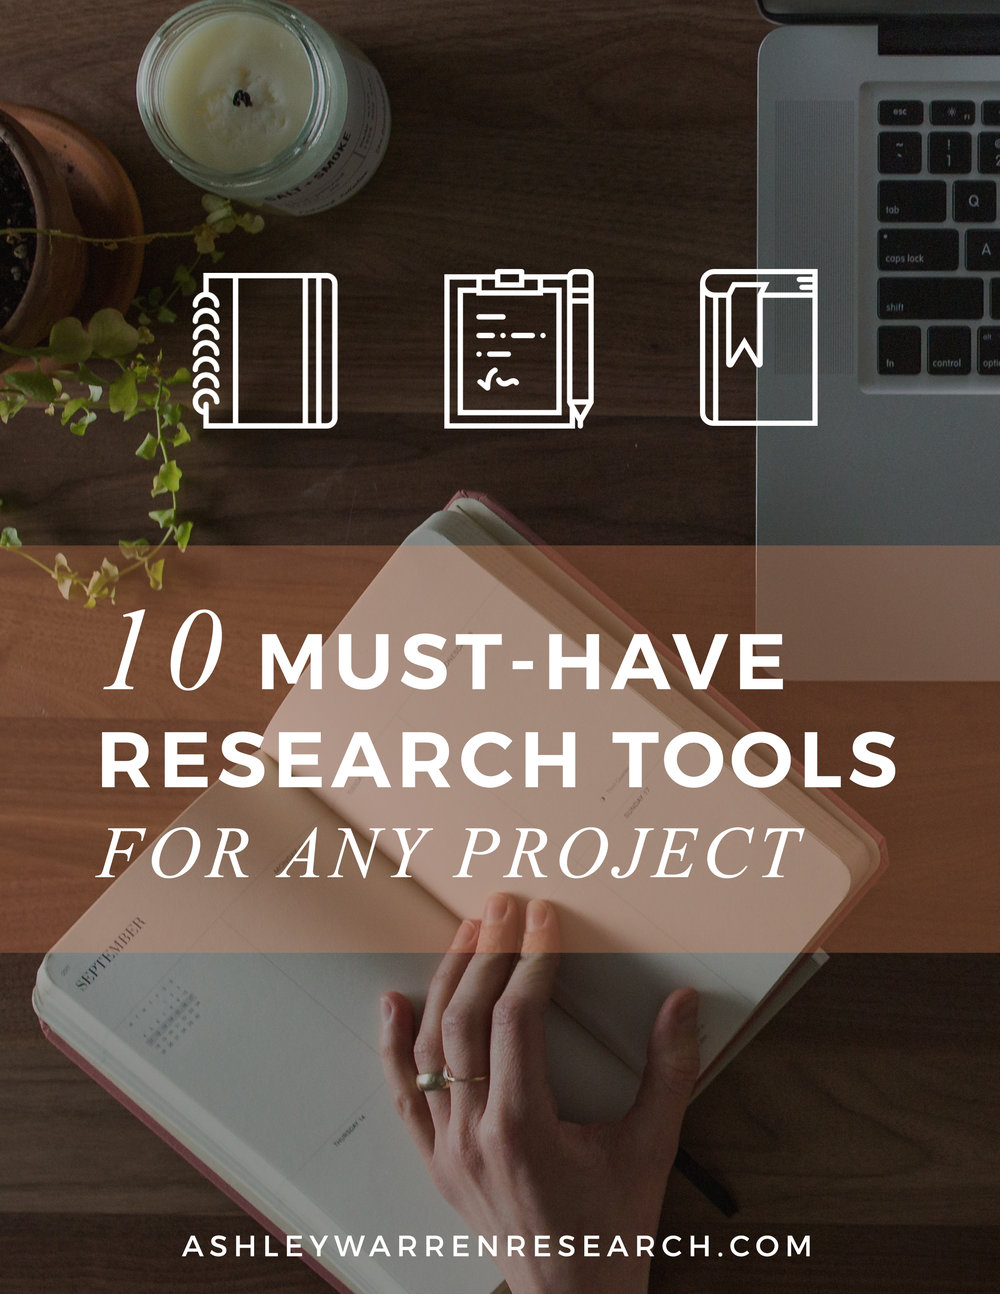 researchtools.jpg